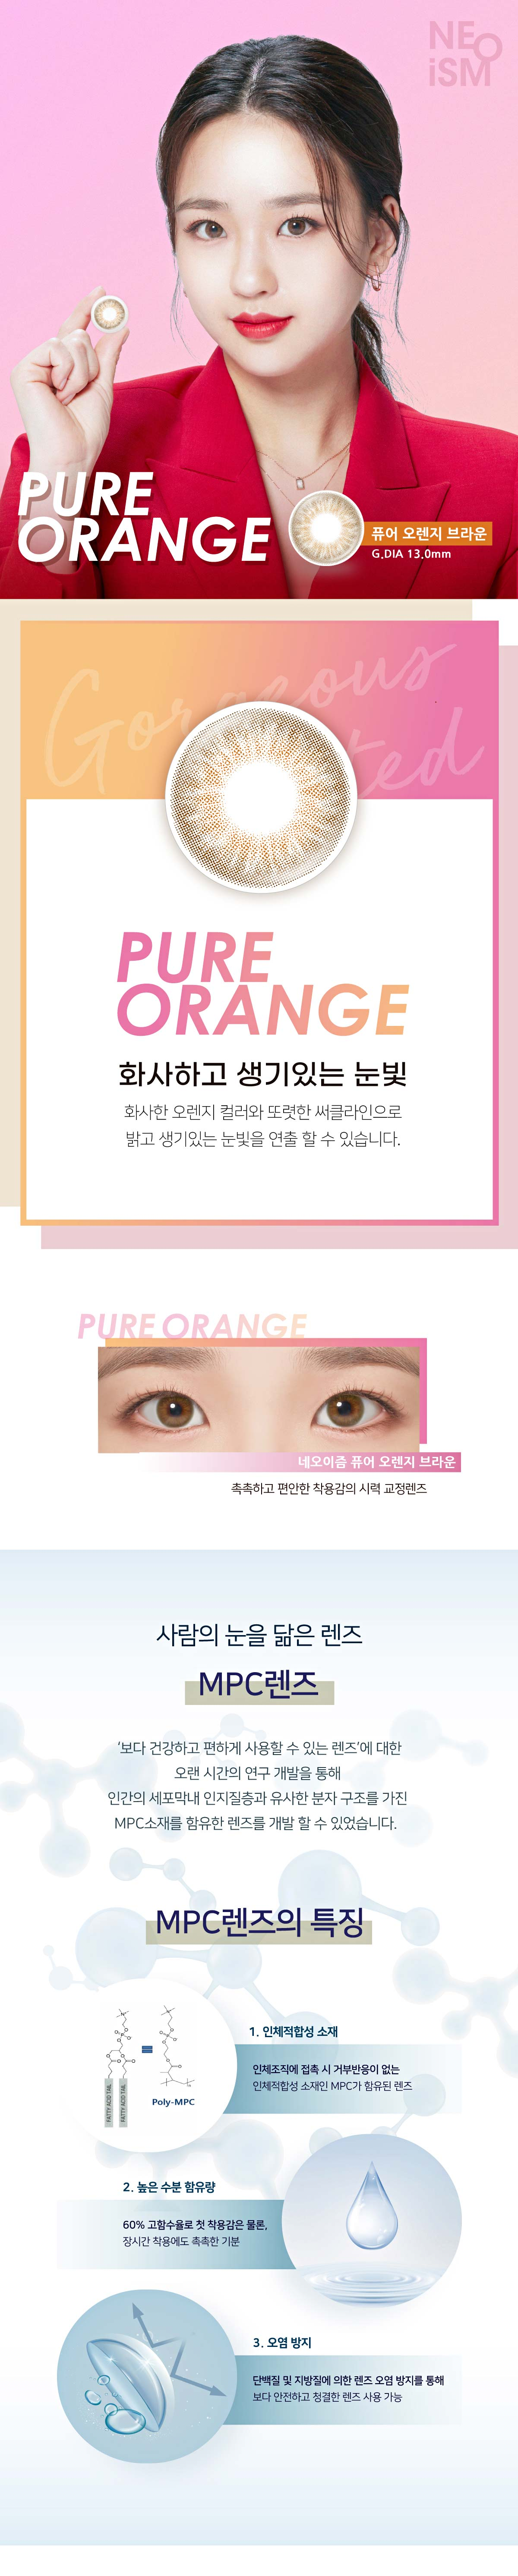 neo-ism-1day-cotnacts-lenses-pure-orange-brown-1.jpg